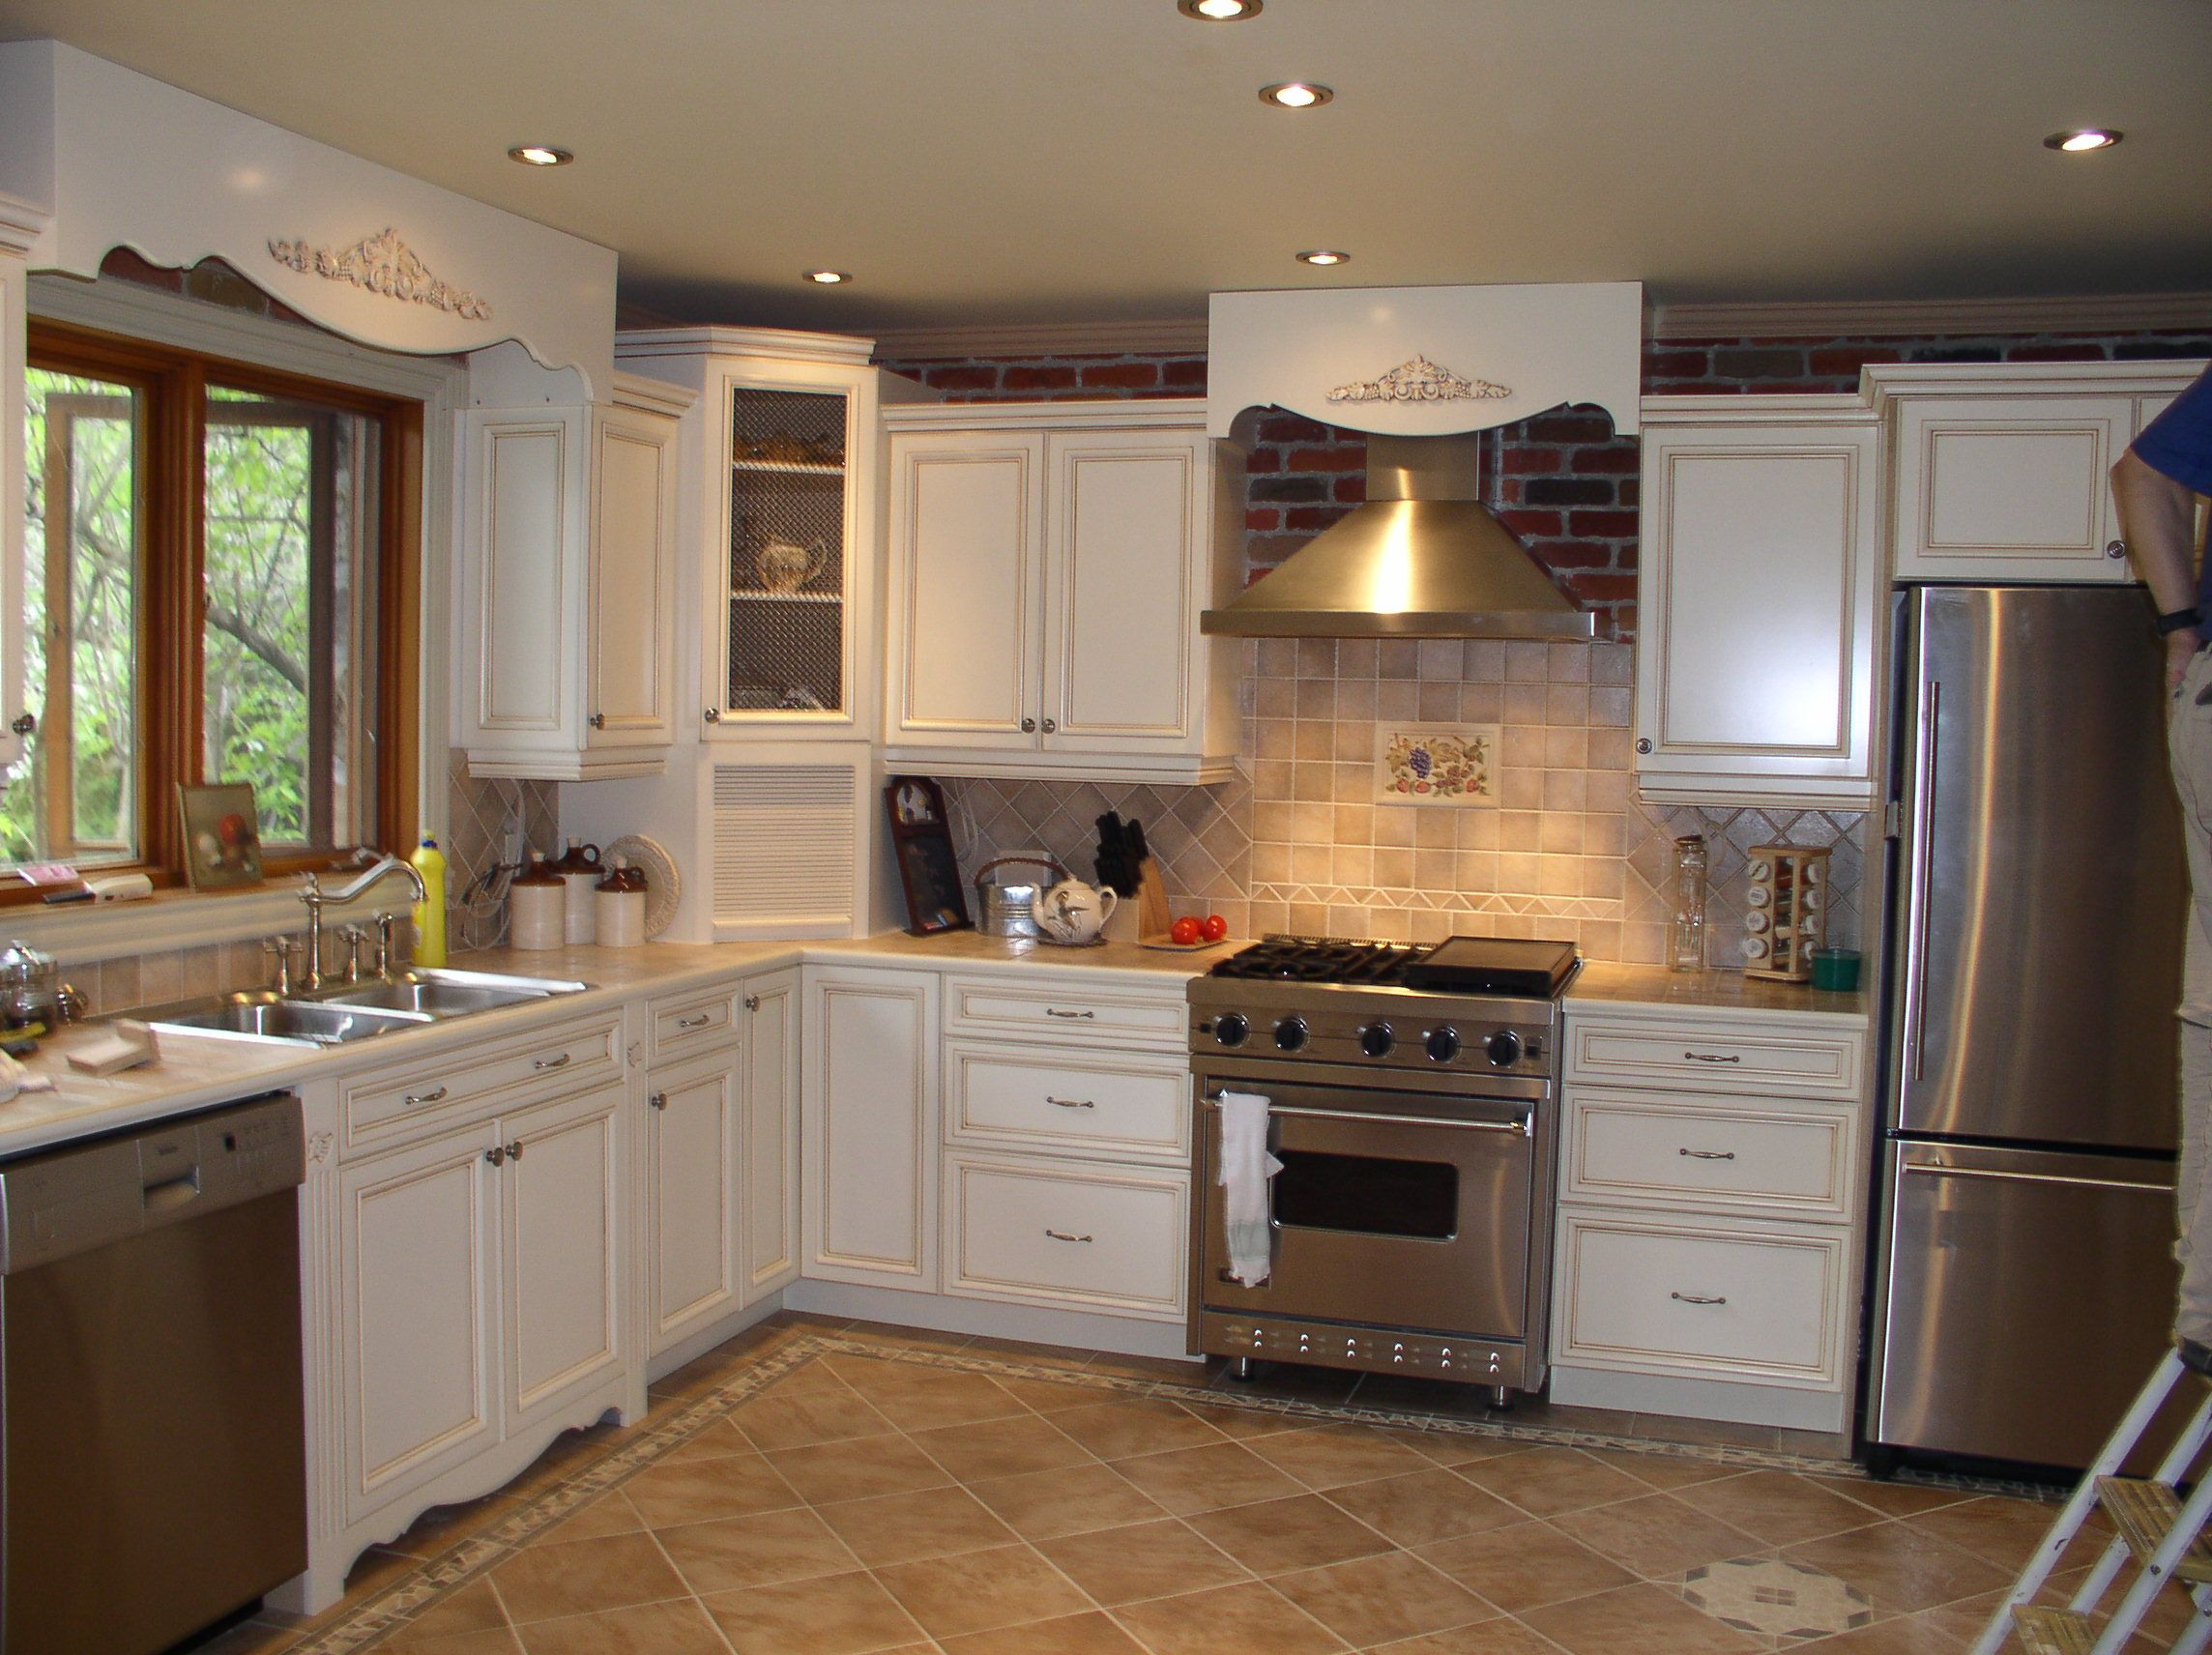 Kitchen+Ideas | Kitchen remodeling ideas home improvement remodeling Kitchen  .